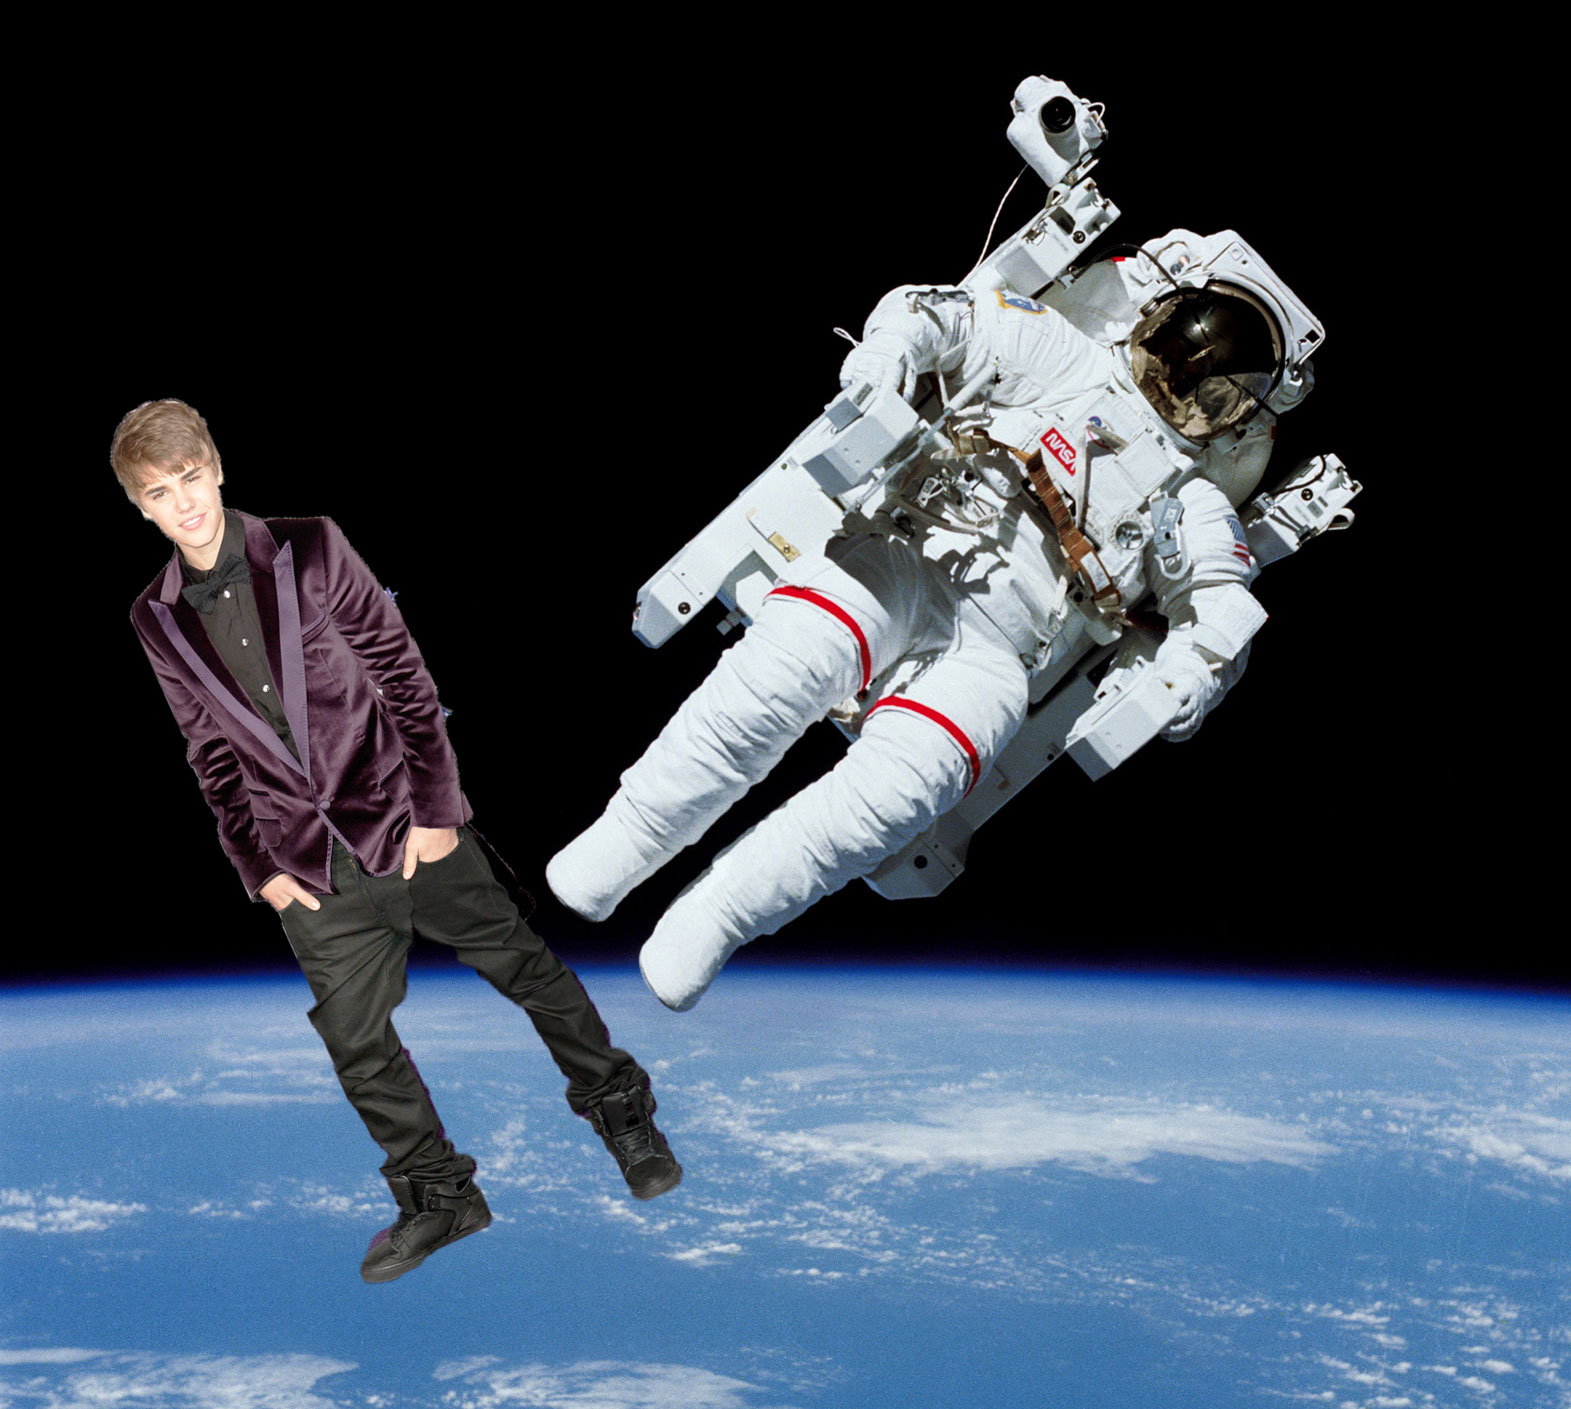 Justin Bieber Should Launch Into Space, Scientist Says